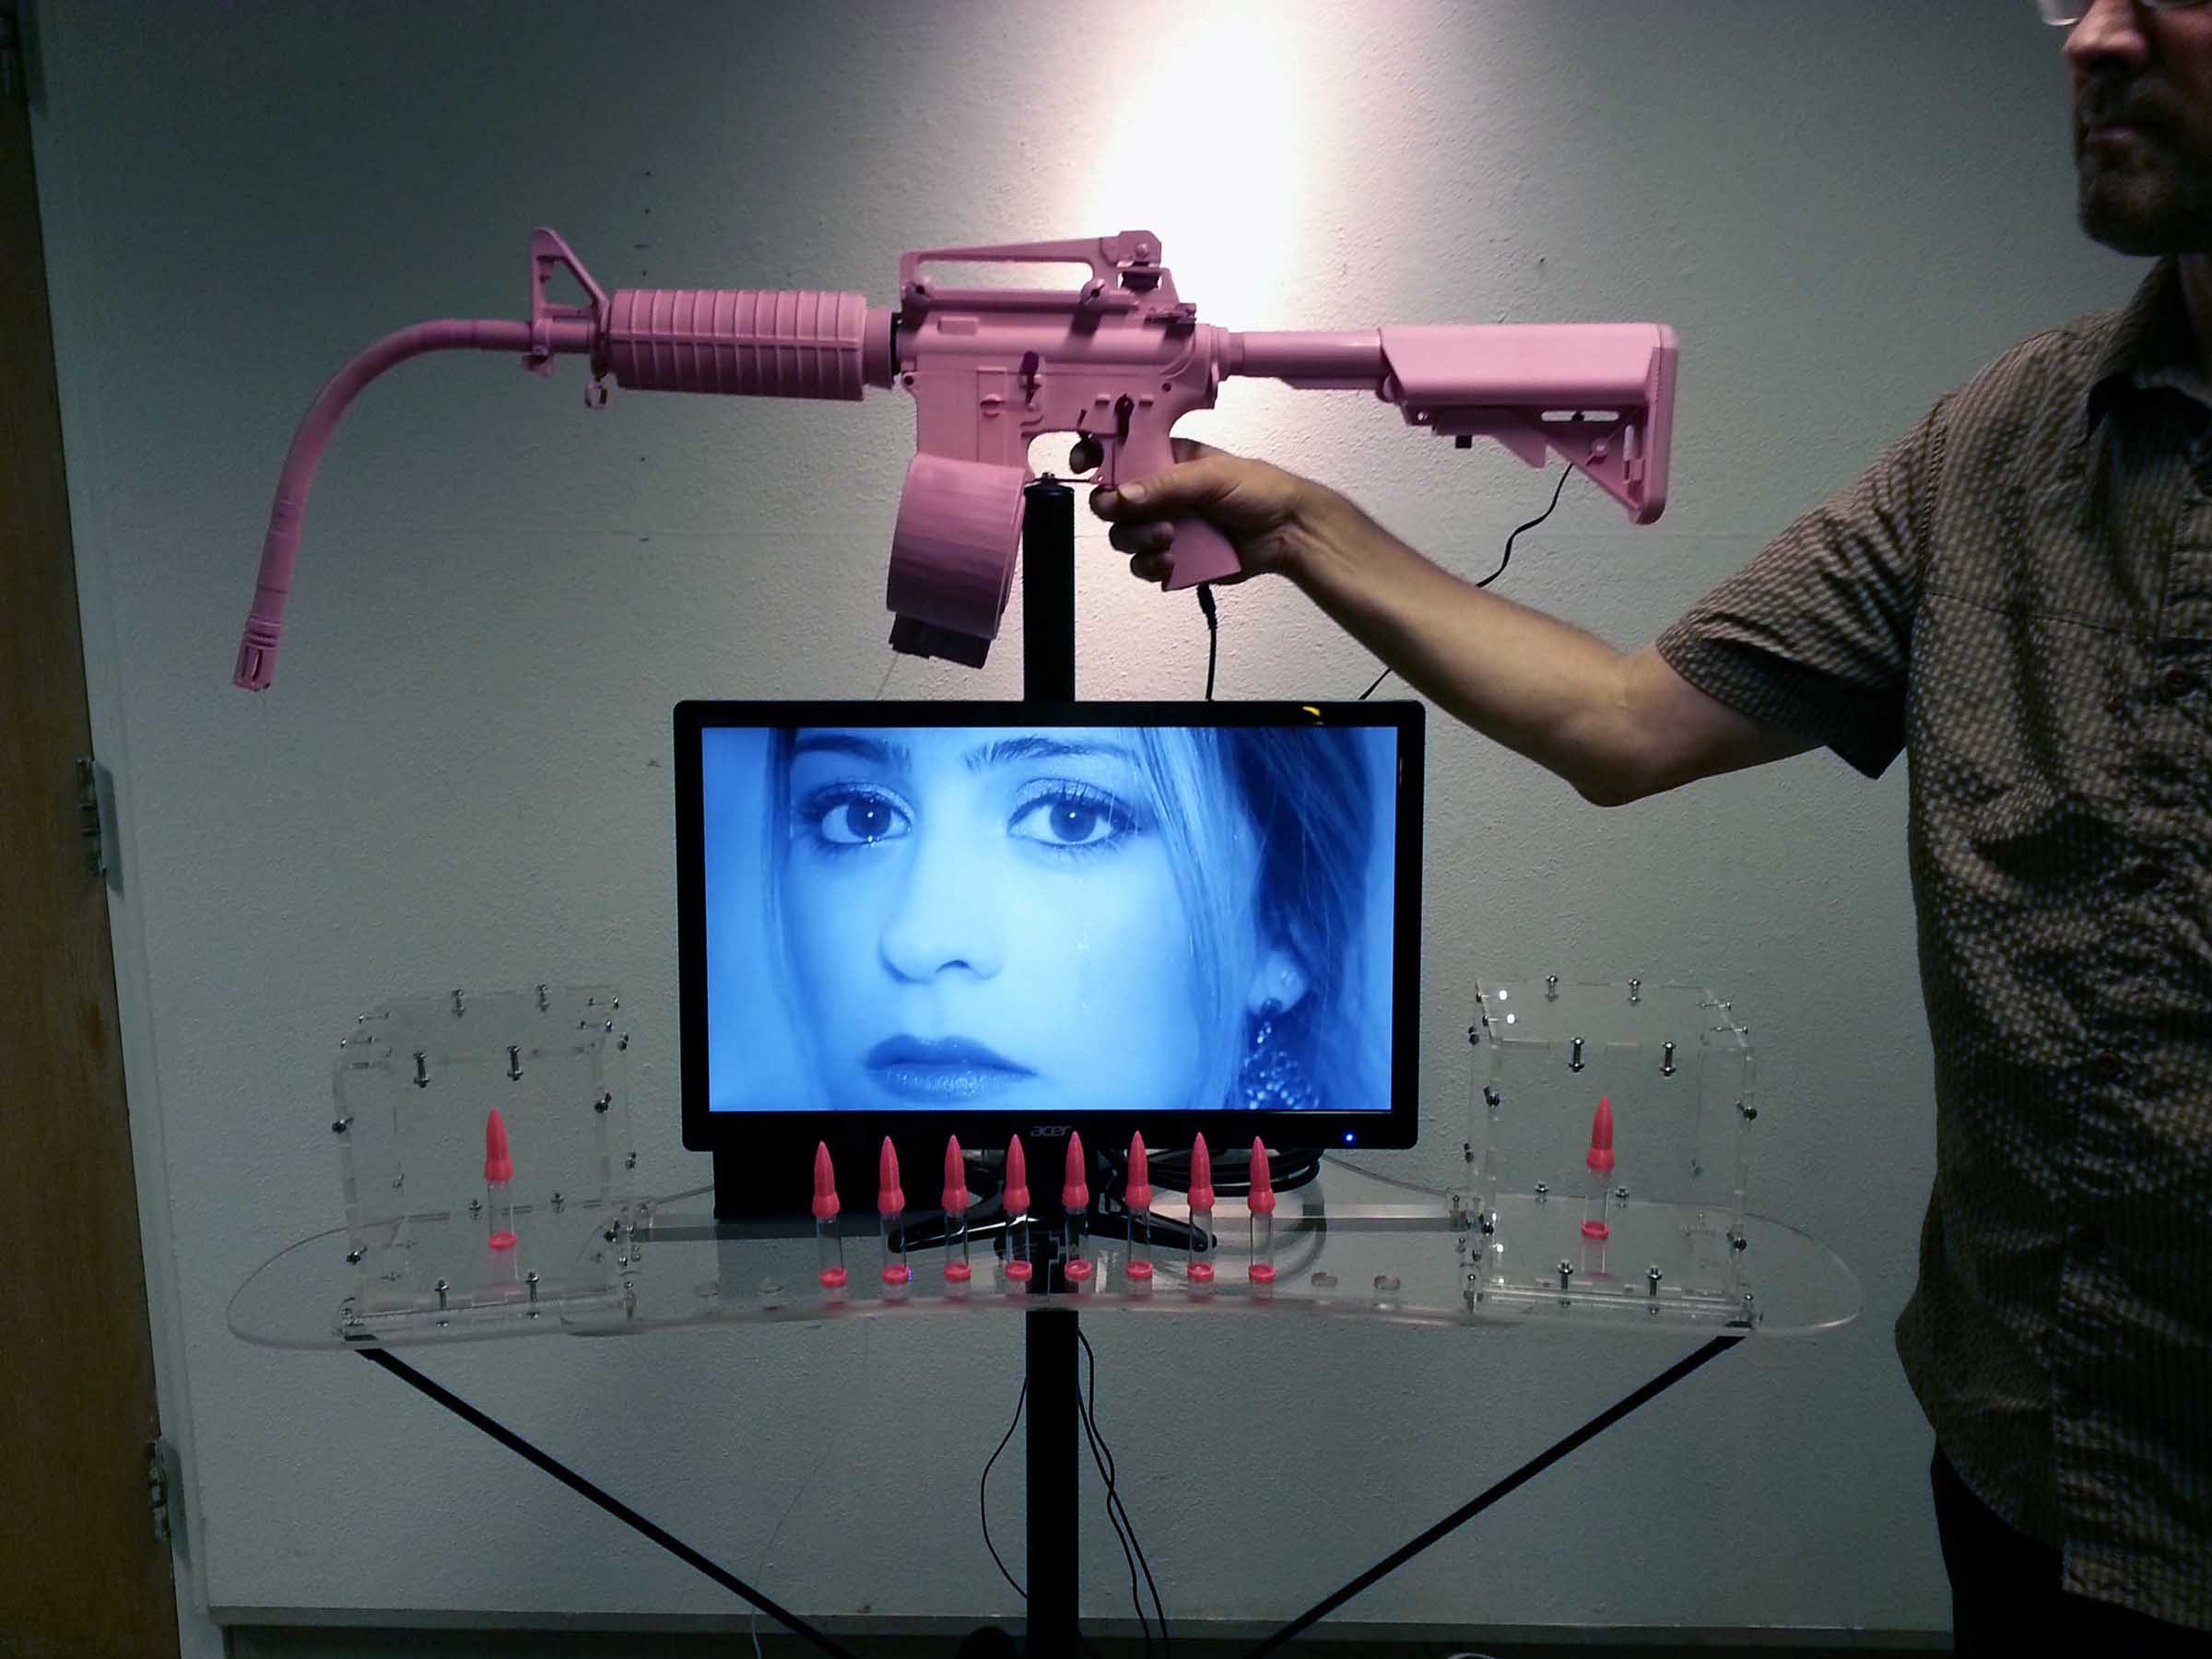 The Womans Tears Machine Gun by Ken Rinaldo pink gun